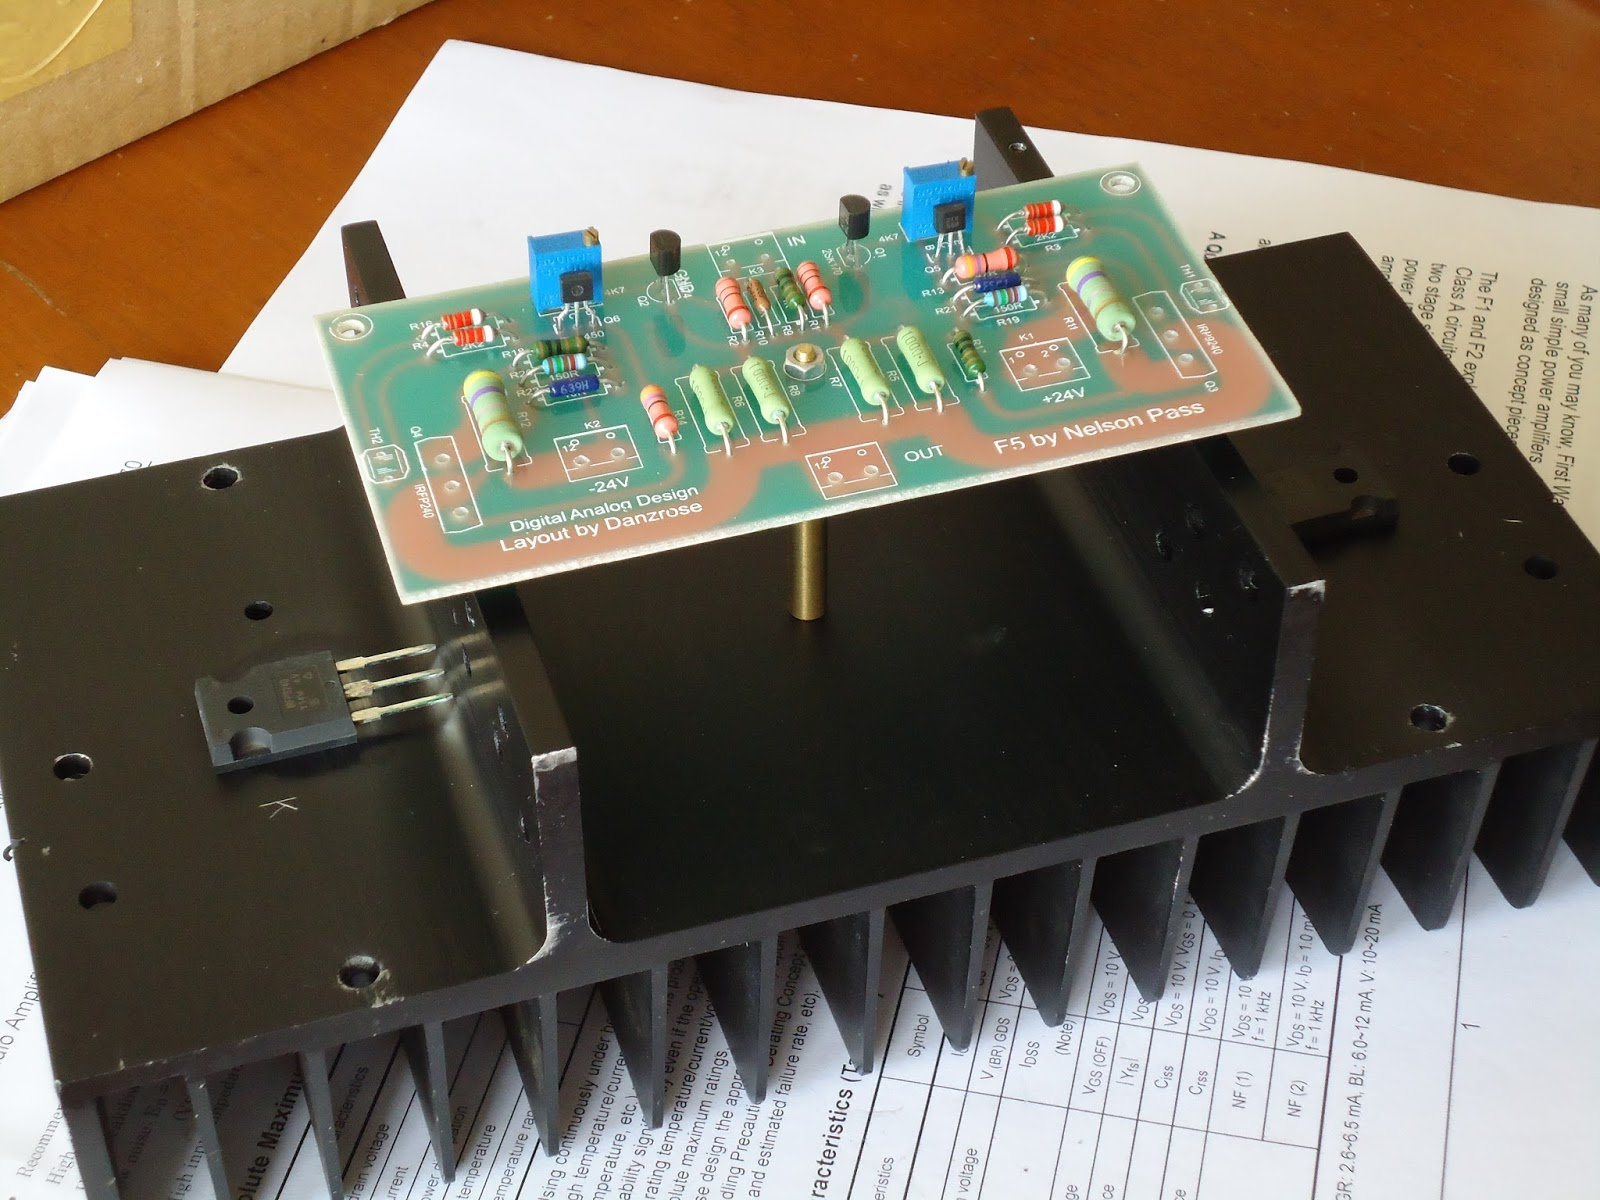 Diy Heatsink Amplifier Alephx 100w Construction Notes The Surface Of Need To Be Clean Before Installing Fet On It Doing This Will